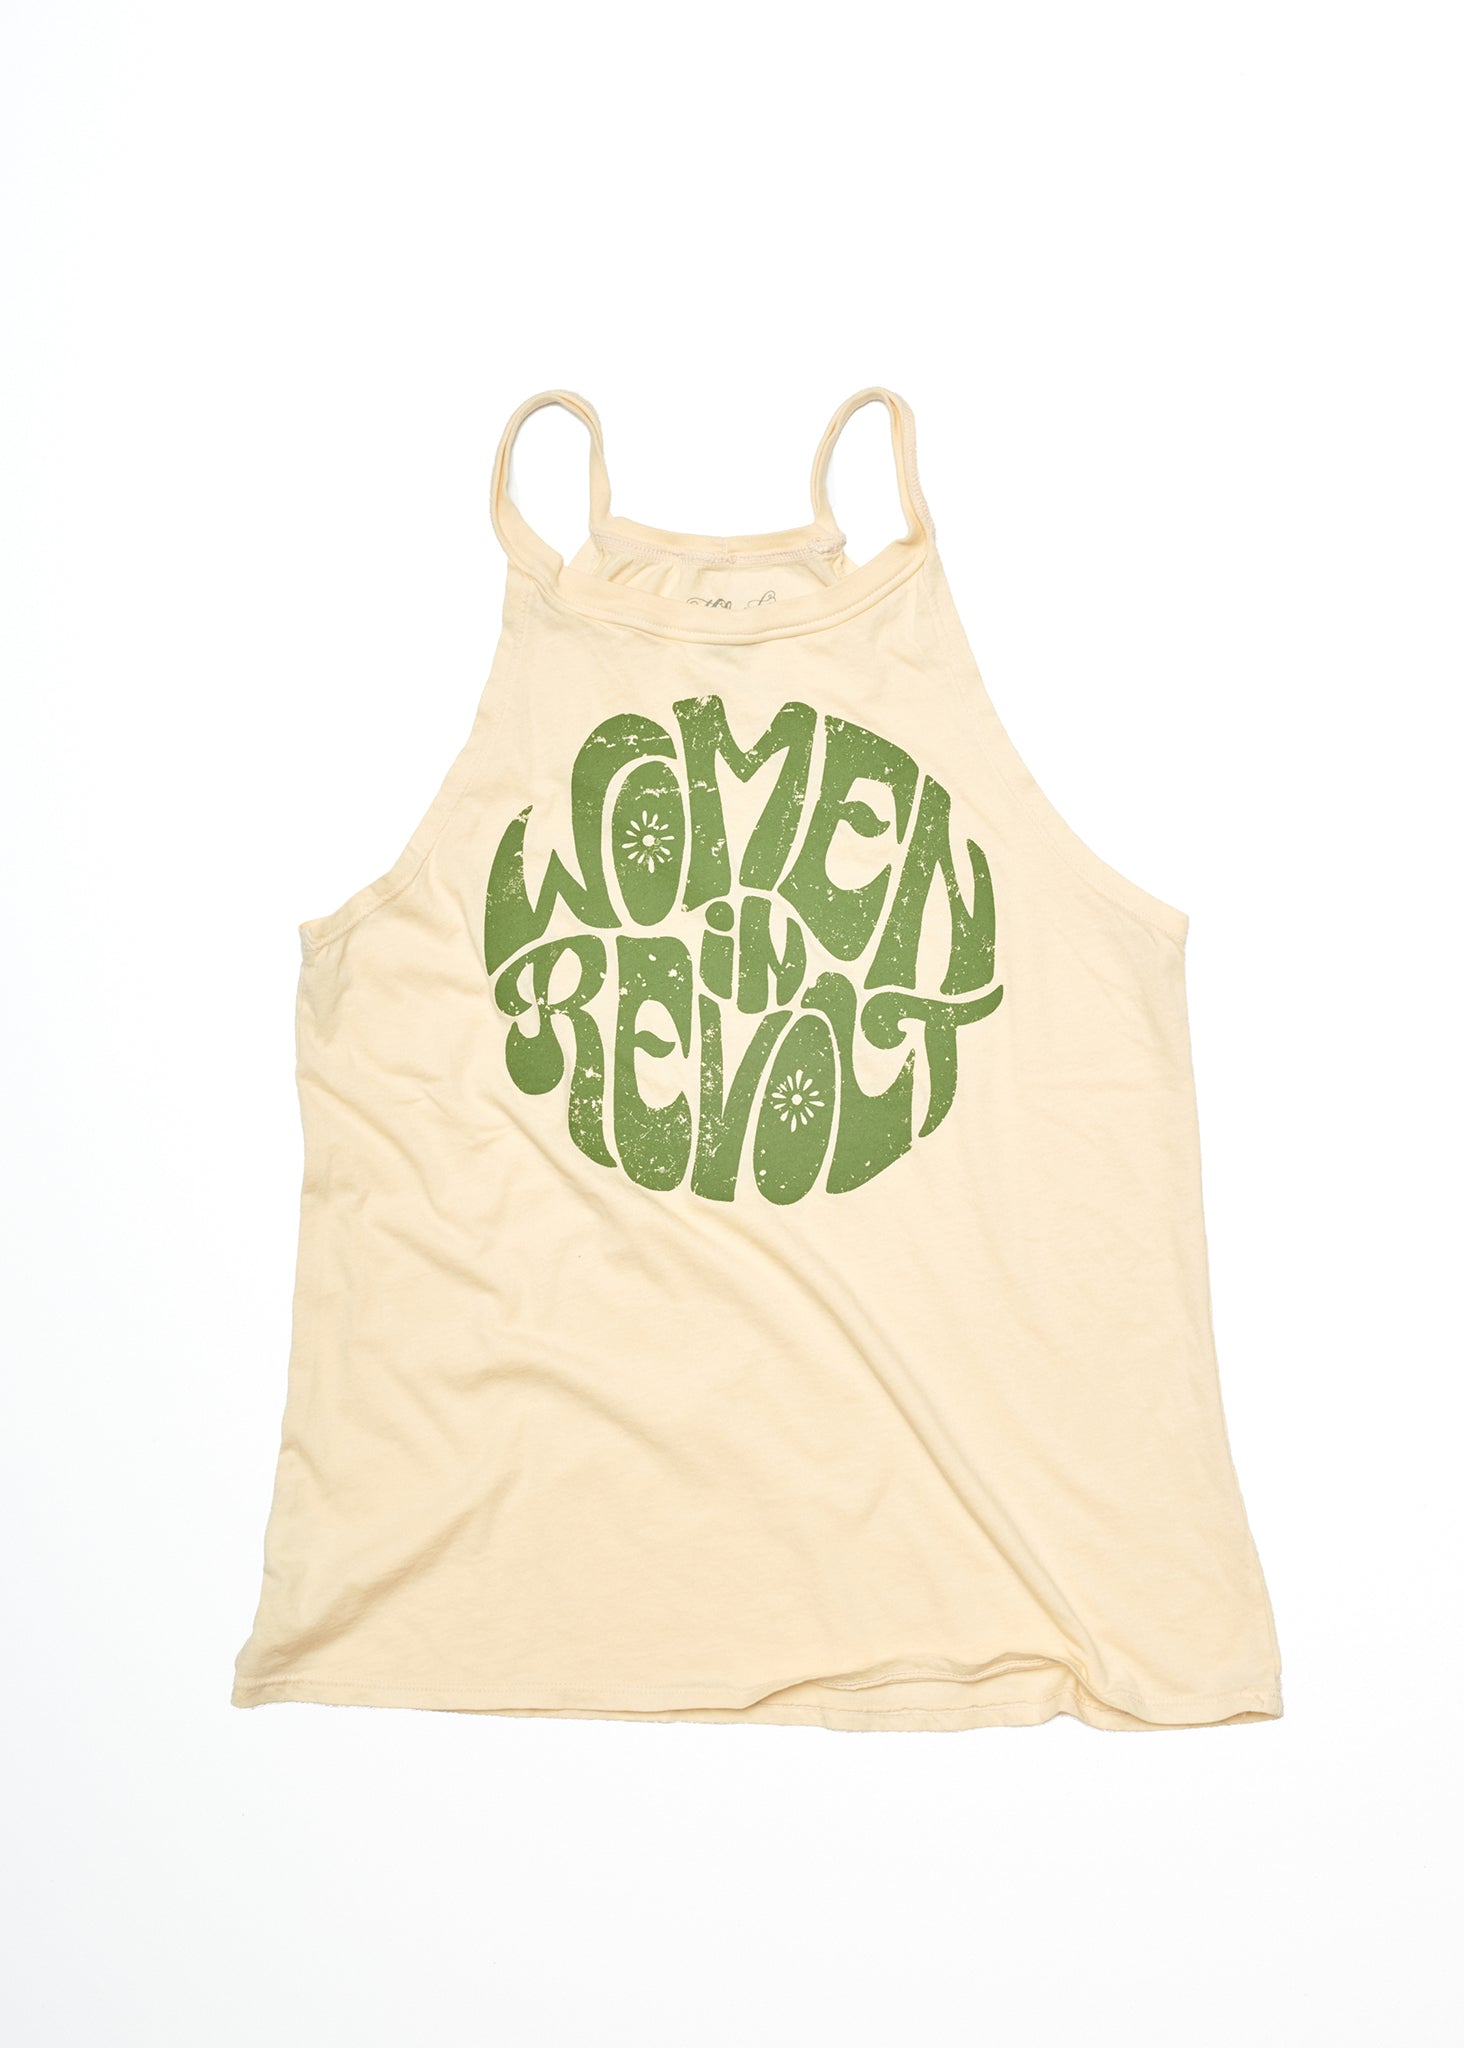 Women in Revolt Halter Tank - Summer Melon - Women's Tee Shirt - Midnight Rider